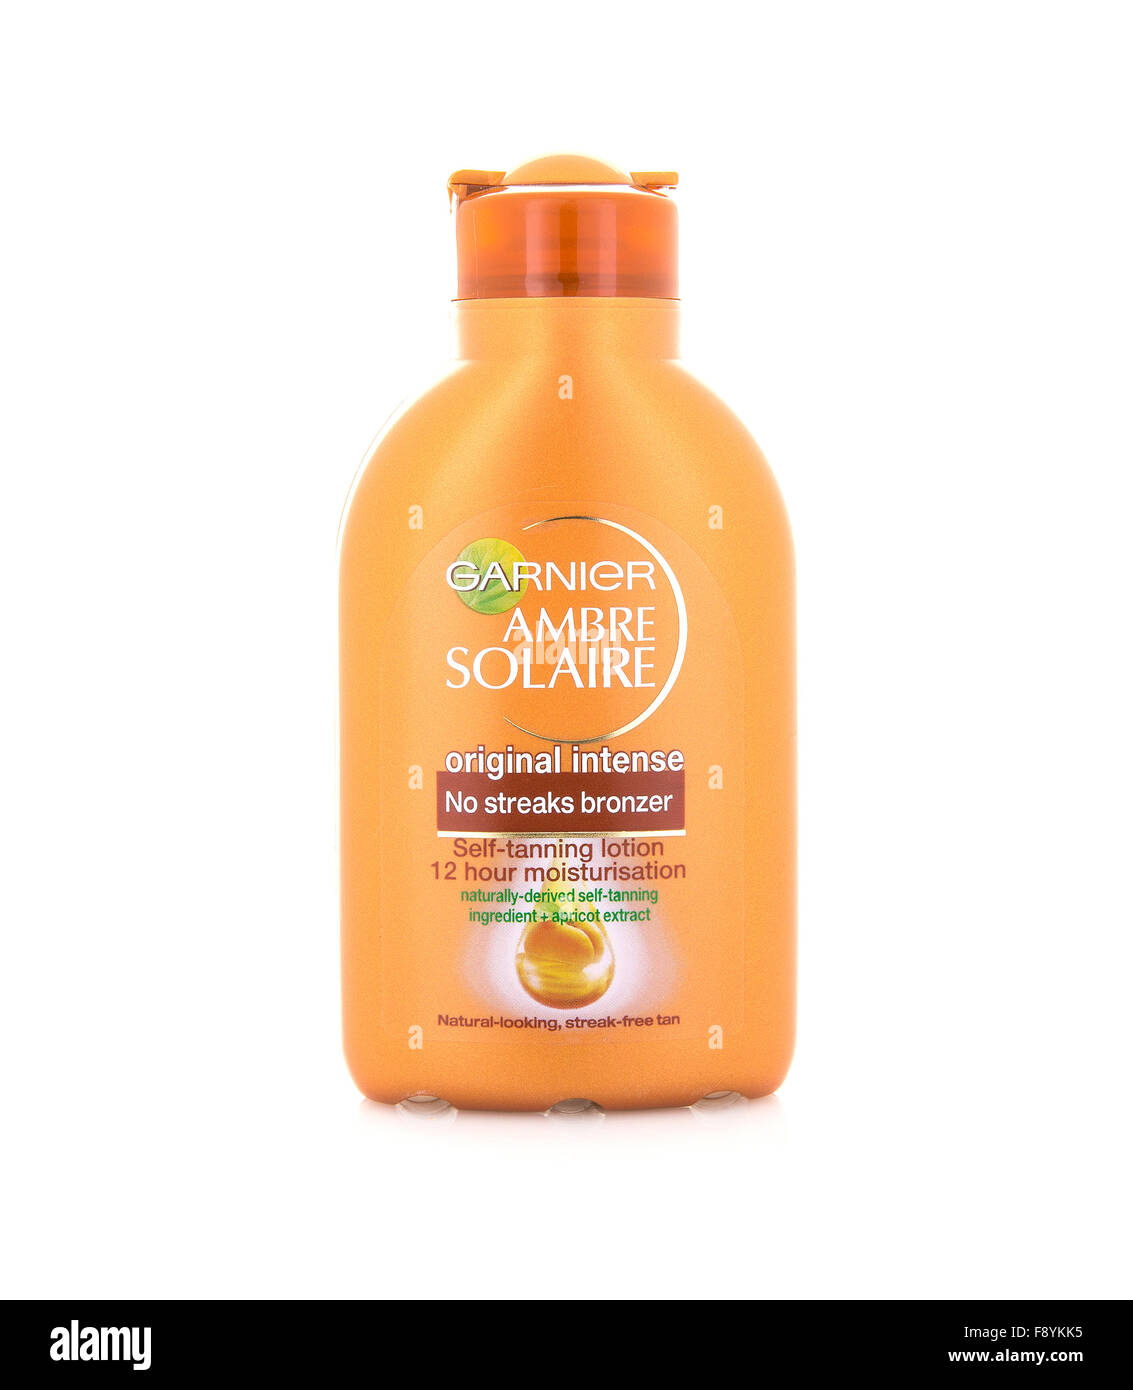 Garnier Ambre Solaire 12 Hour Self Tanning Lotion on a White Background - Stock Image